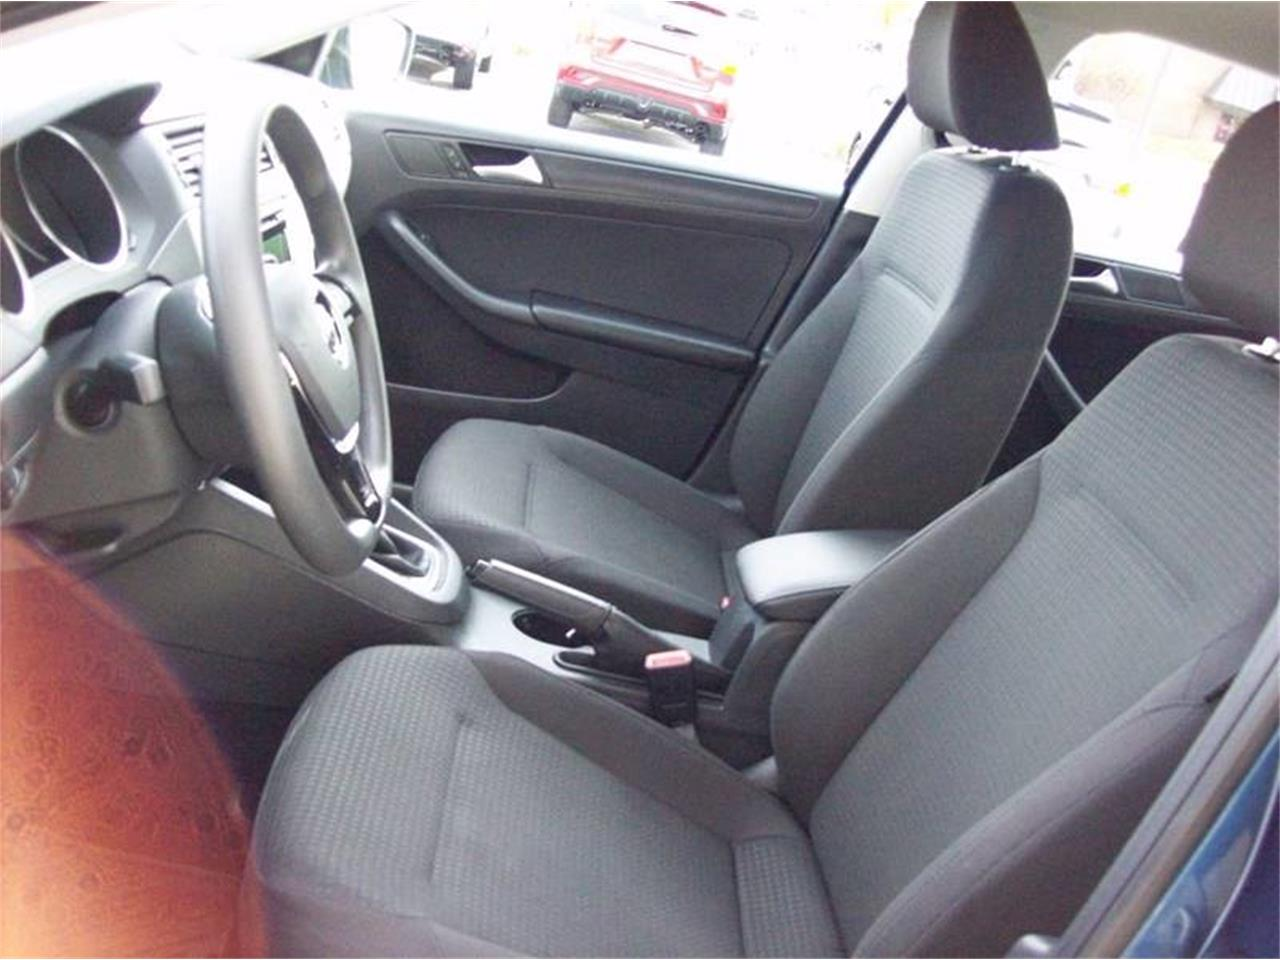 Large Picture of '15 Volkswagen Jetta located in Holland Michigan - $10,995.00 - M6XO